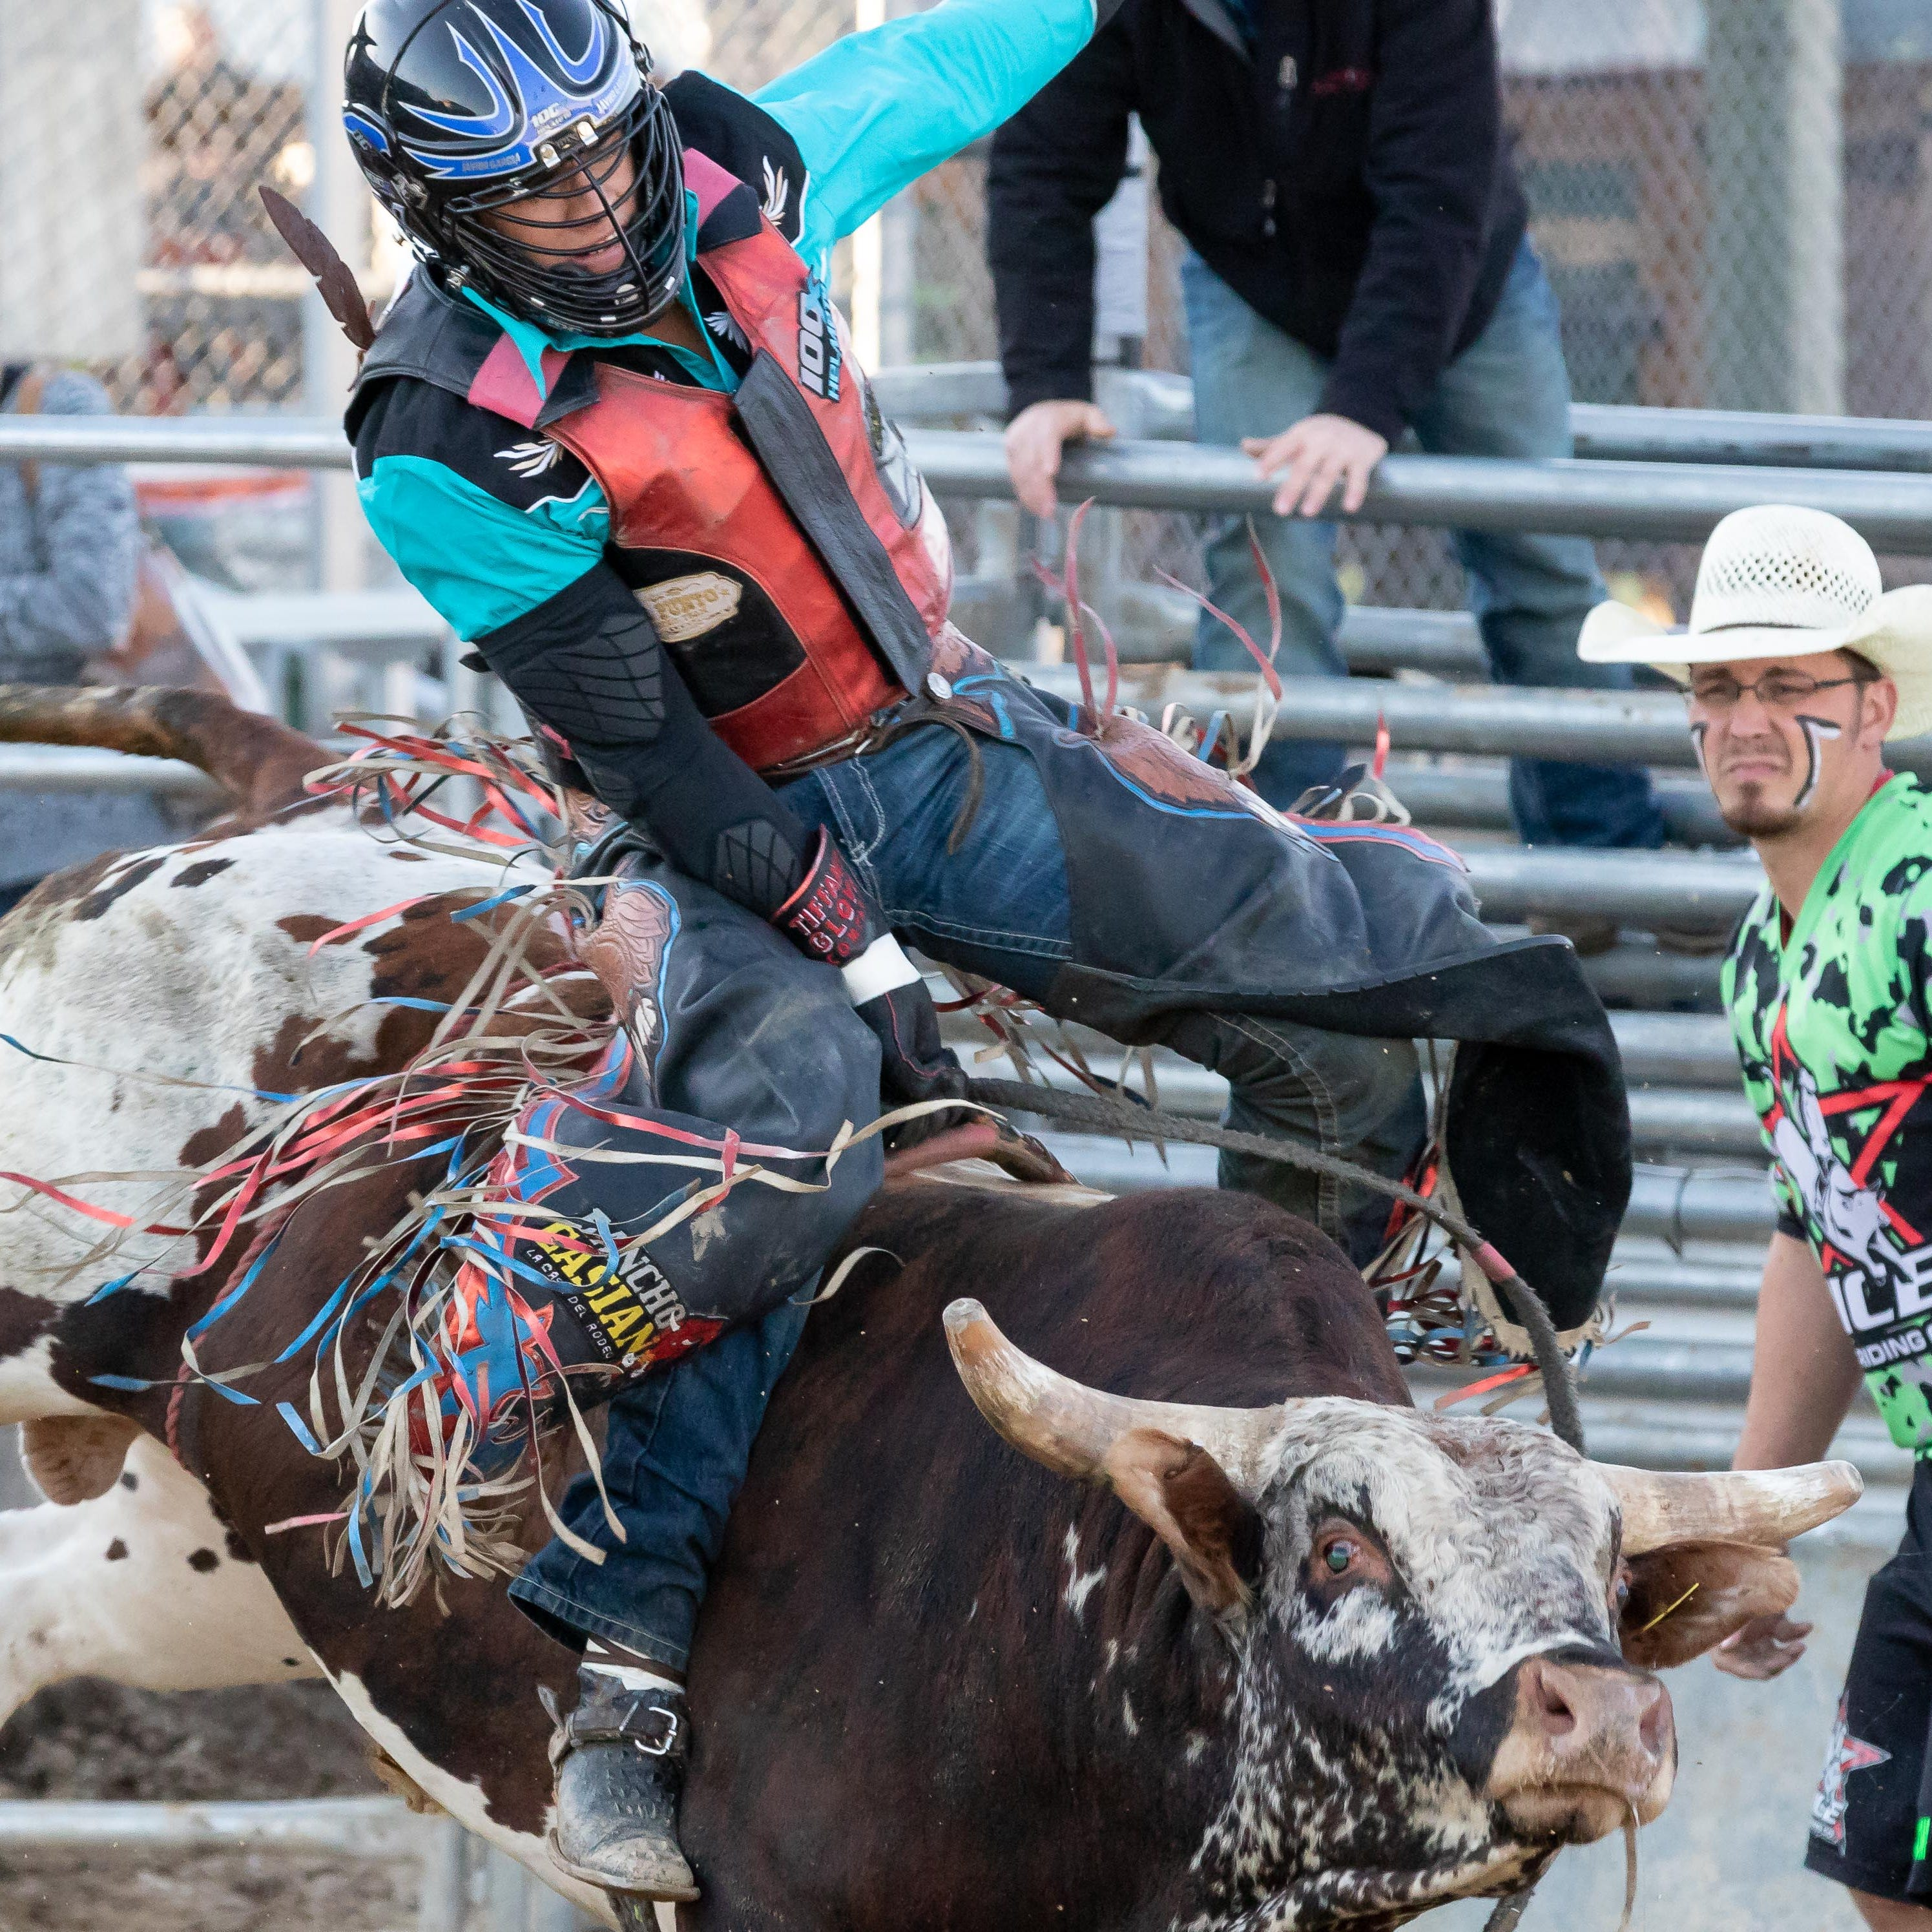 Bull riders and barrel racers compete in finals at Marshfield fairgrounds